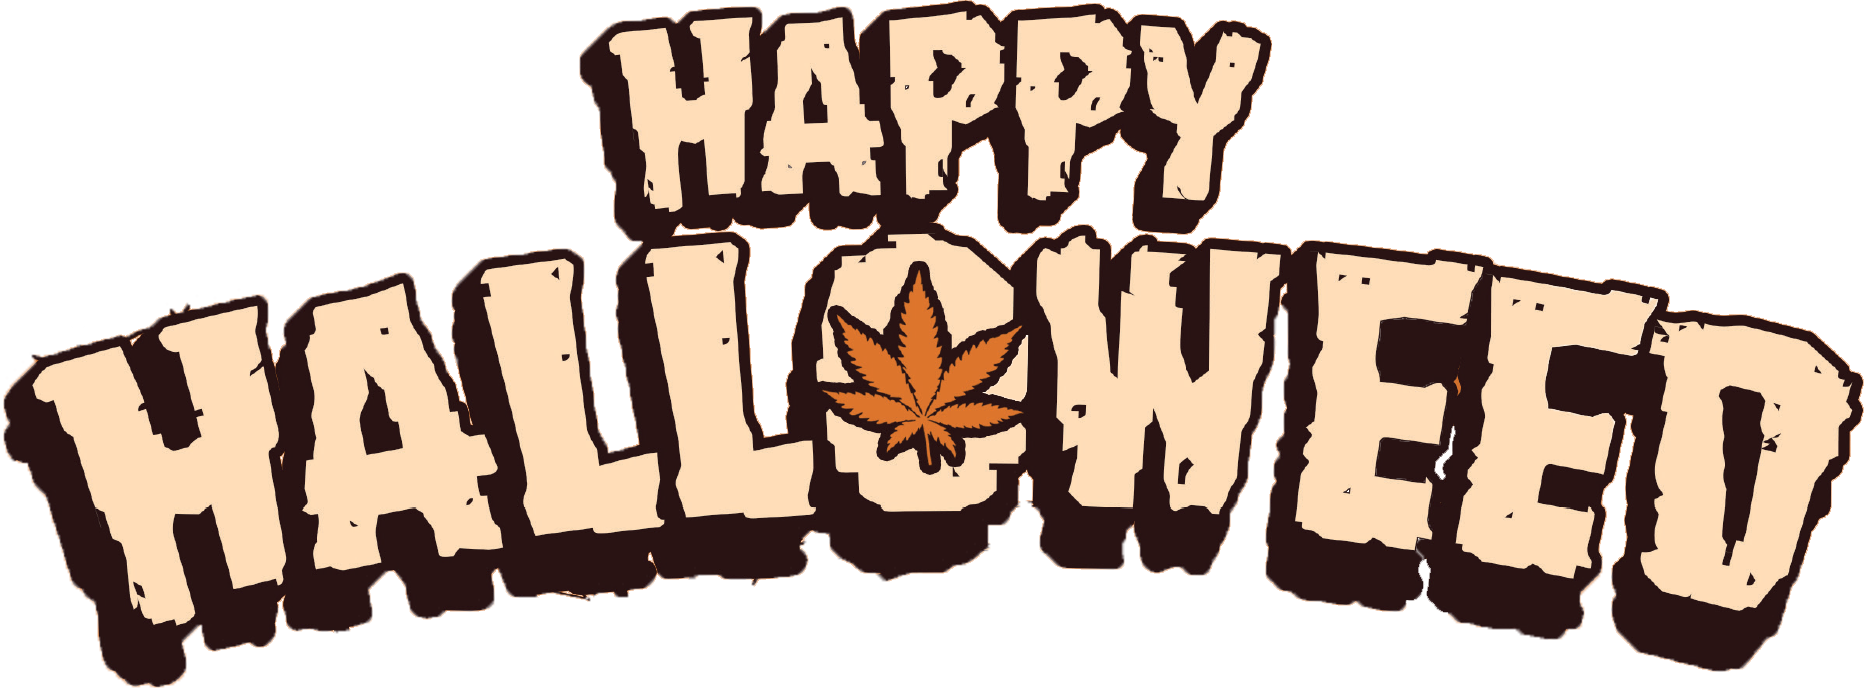 October month clip art picture freeuse library OCTOBER 2017 - The Ganja Gazette picture freeuse library